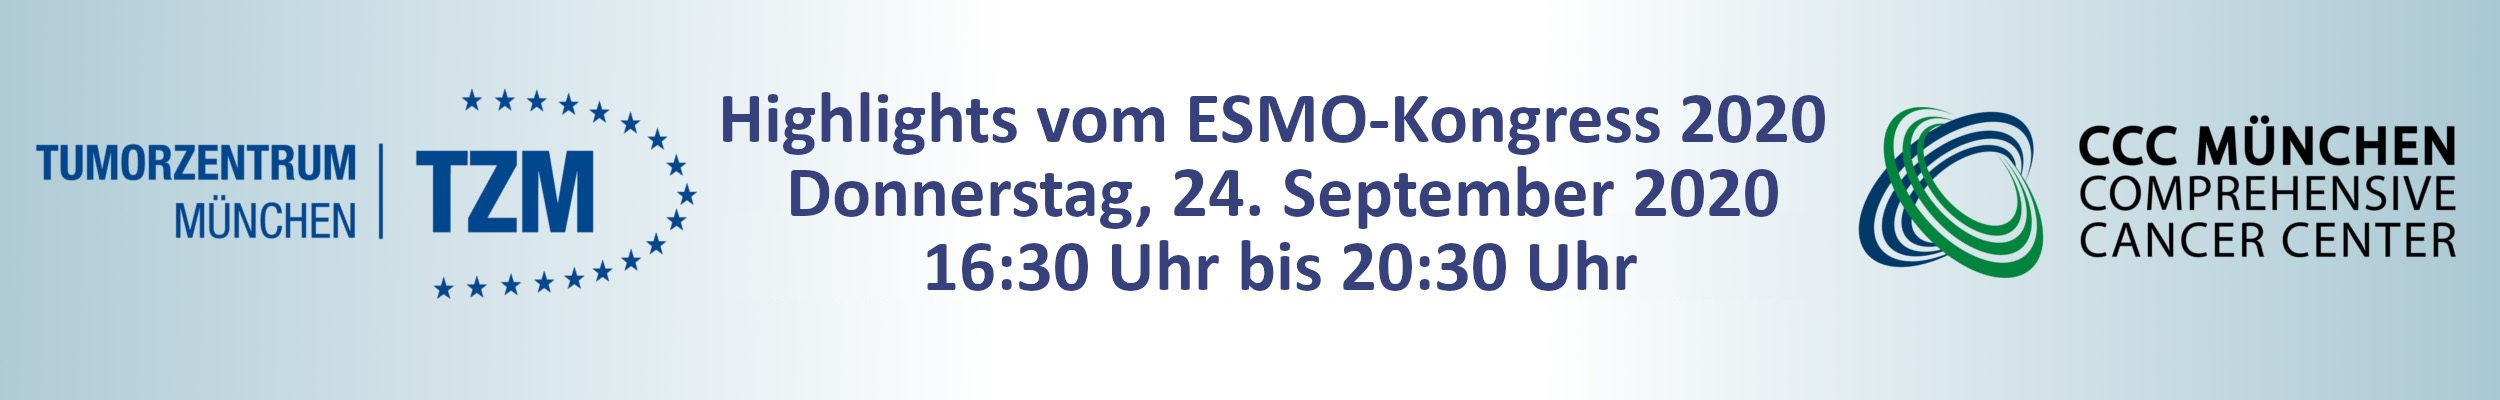 Esmo Highlights